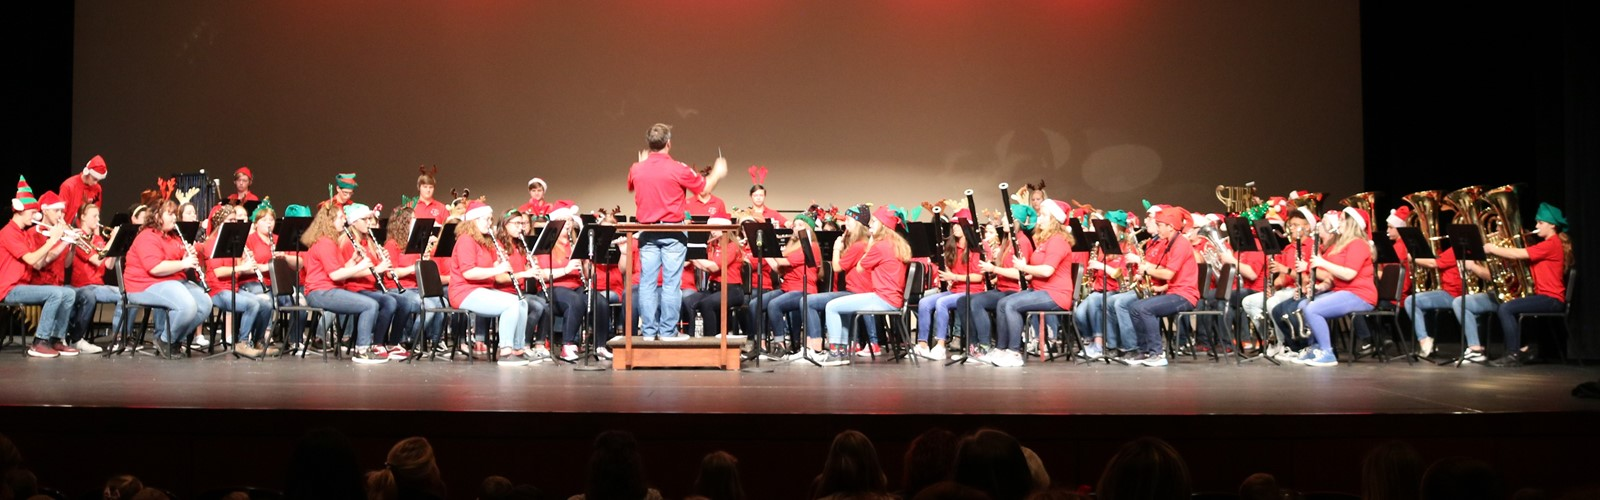 VWHS band performs at the Kiddie Christmas Concert